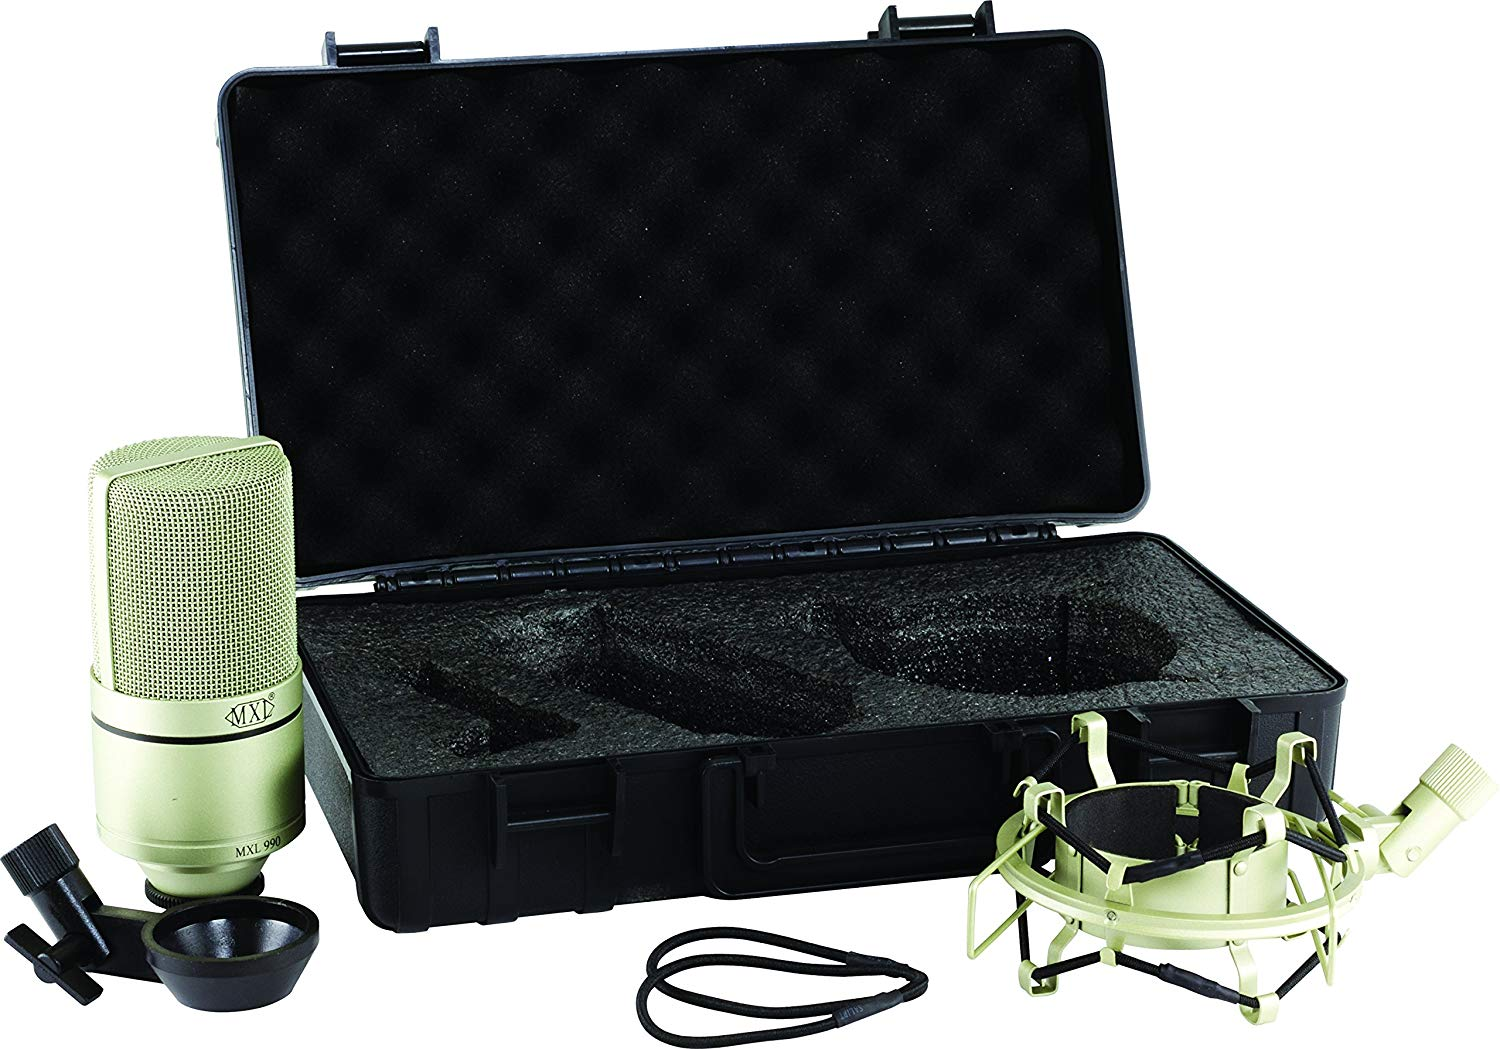 Contents of The MXL990 XLR Condenser Mic Package